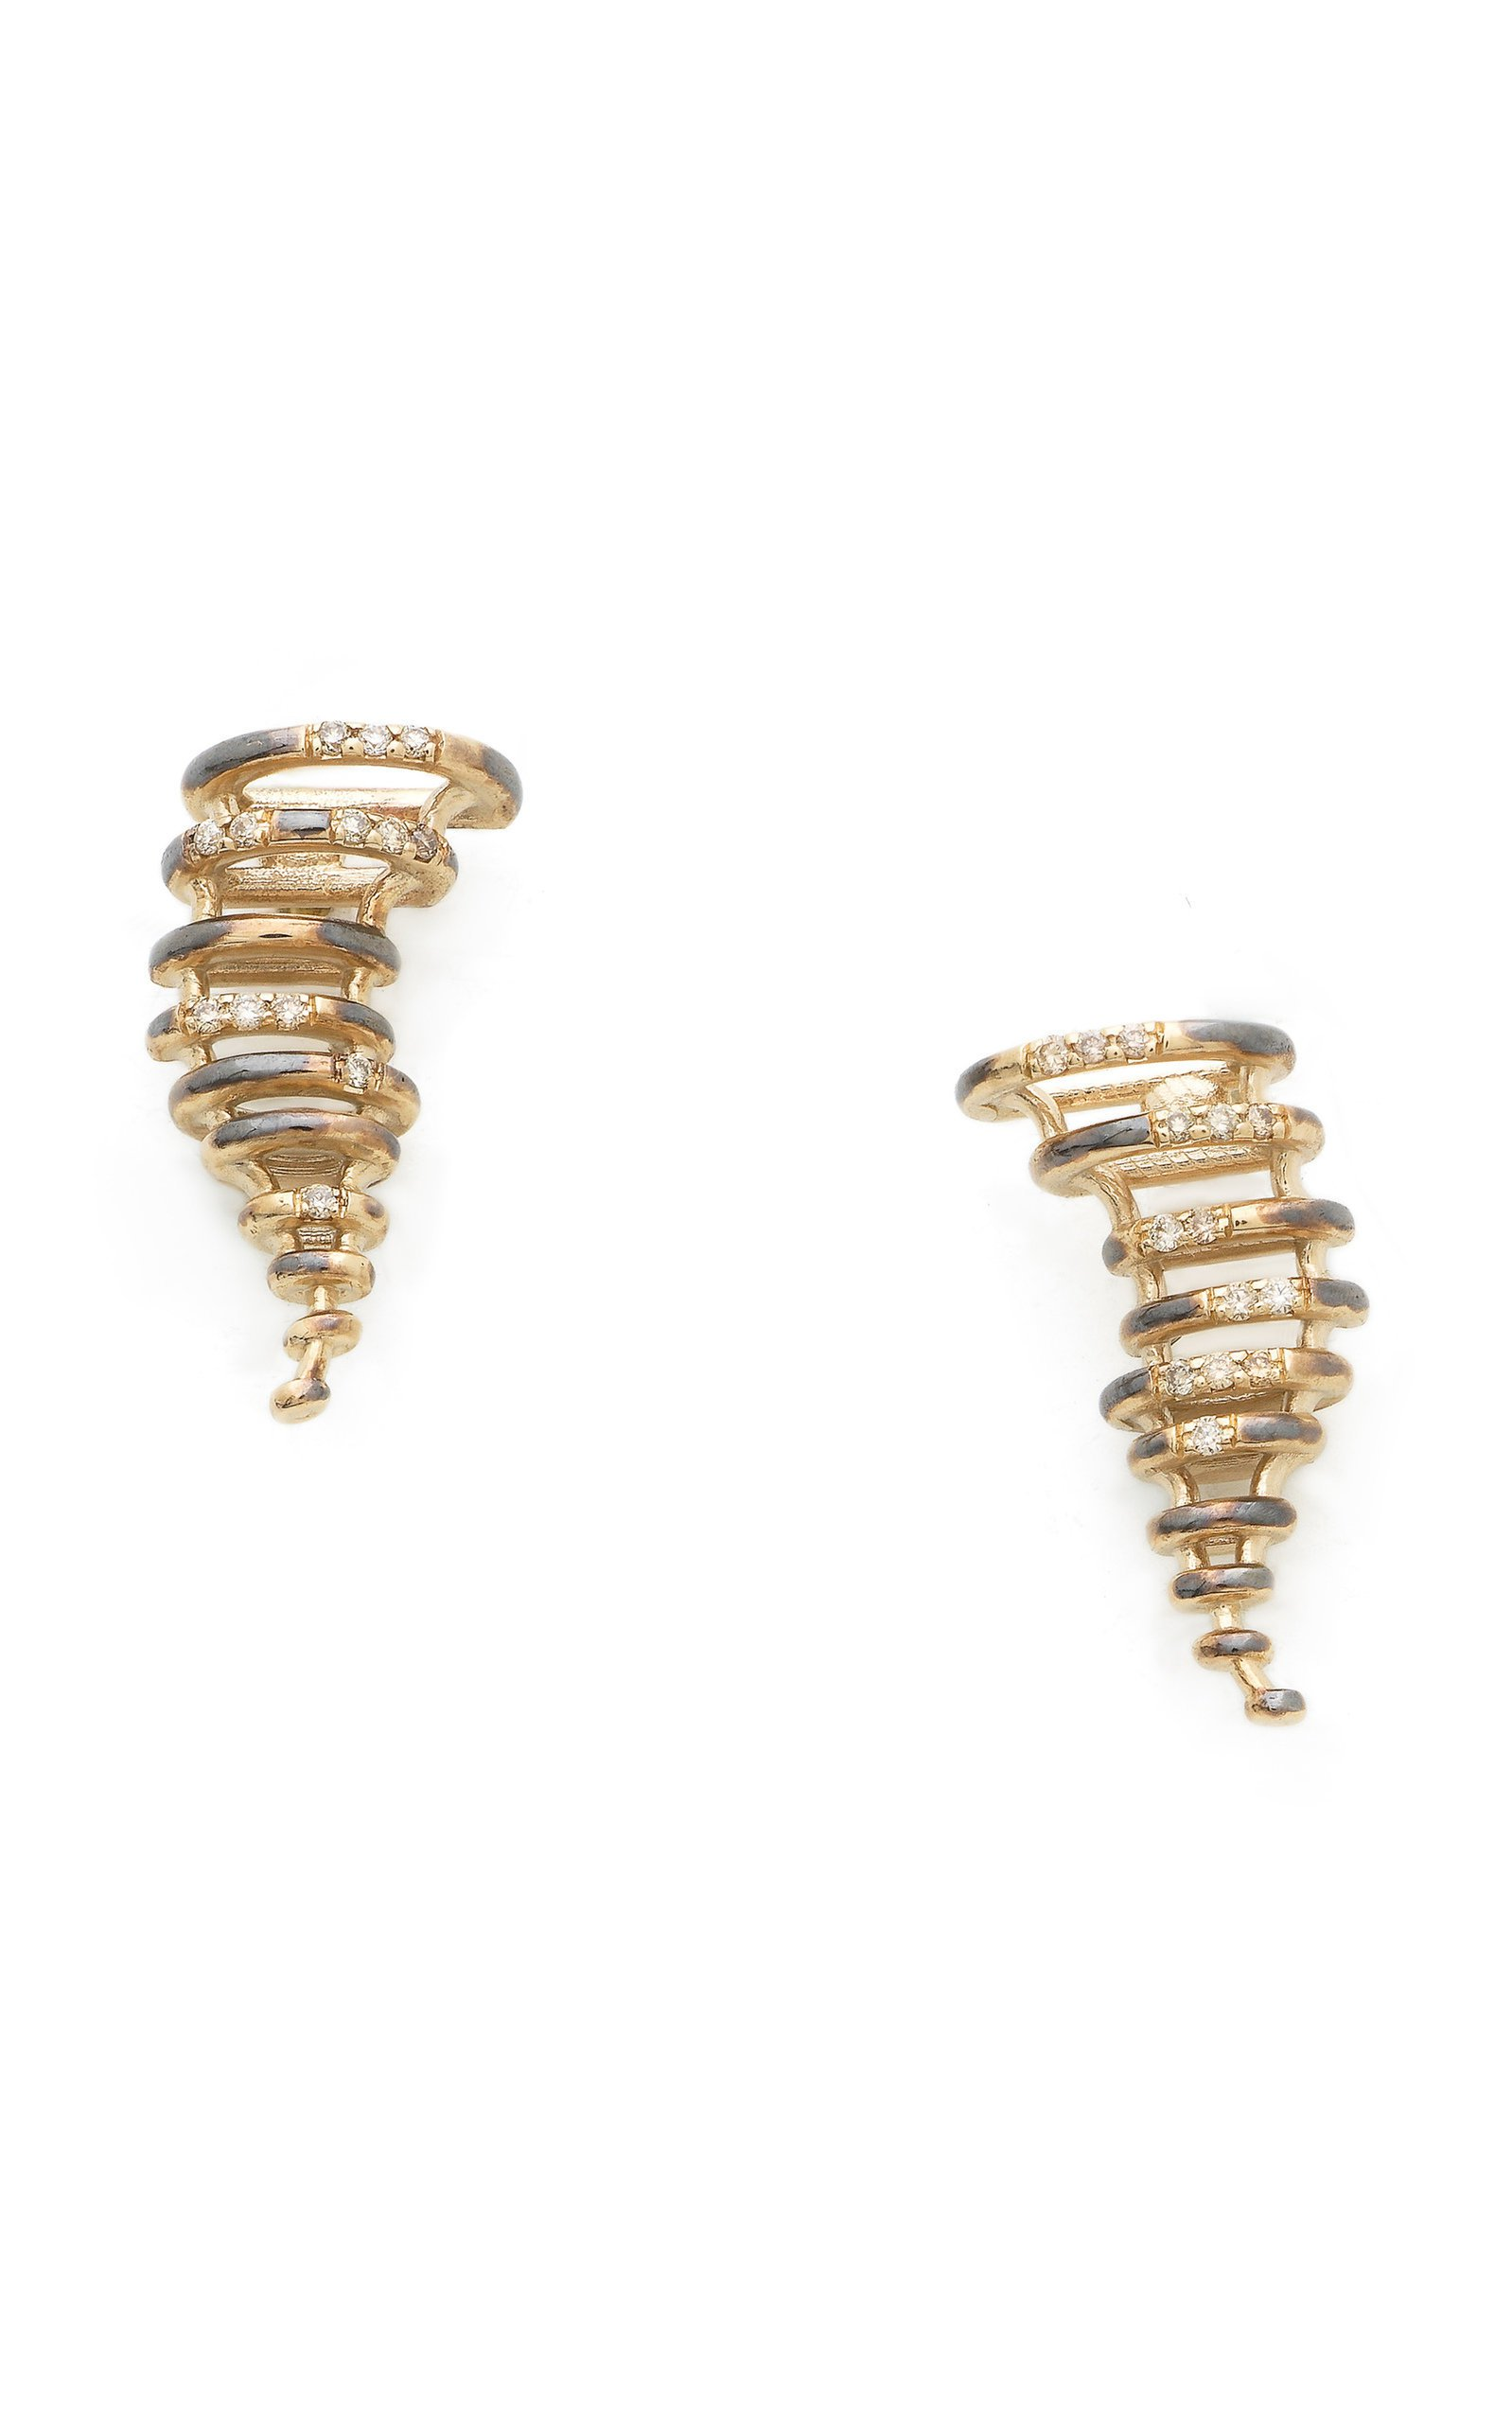 Bibi van der Velden Mini Tornado Earrings